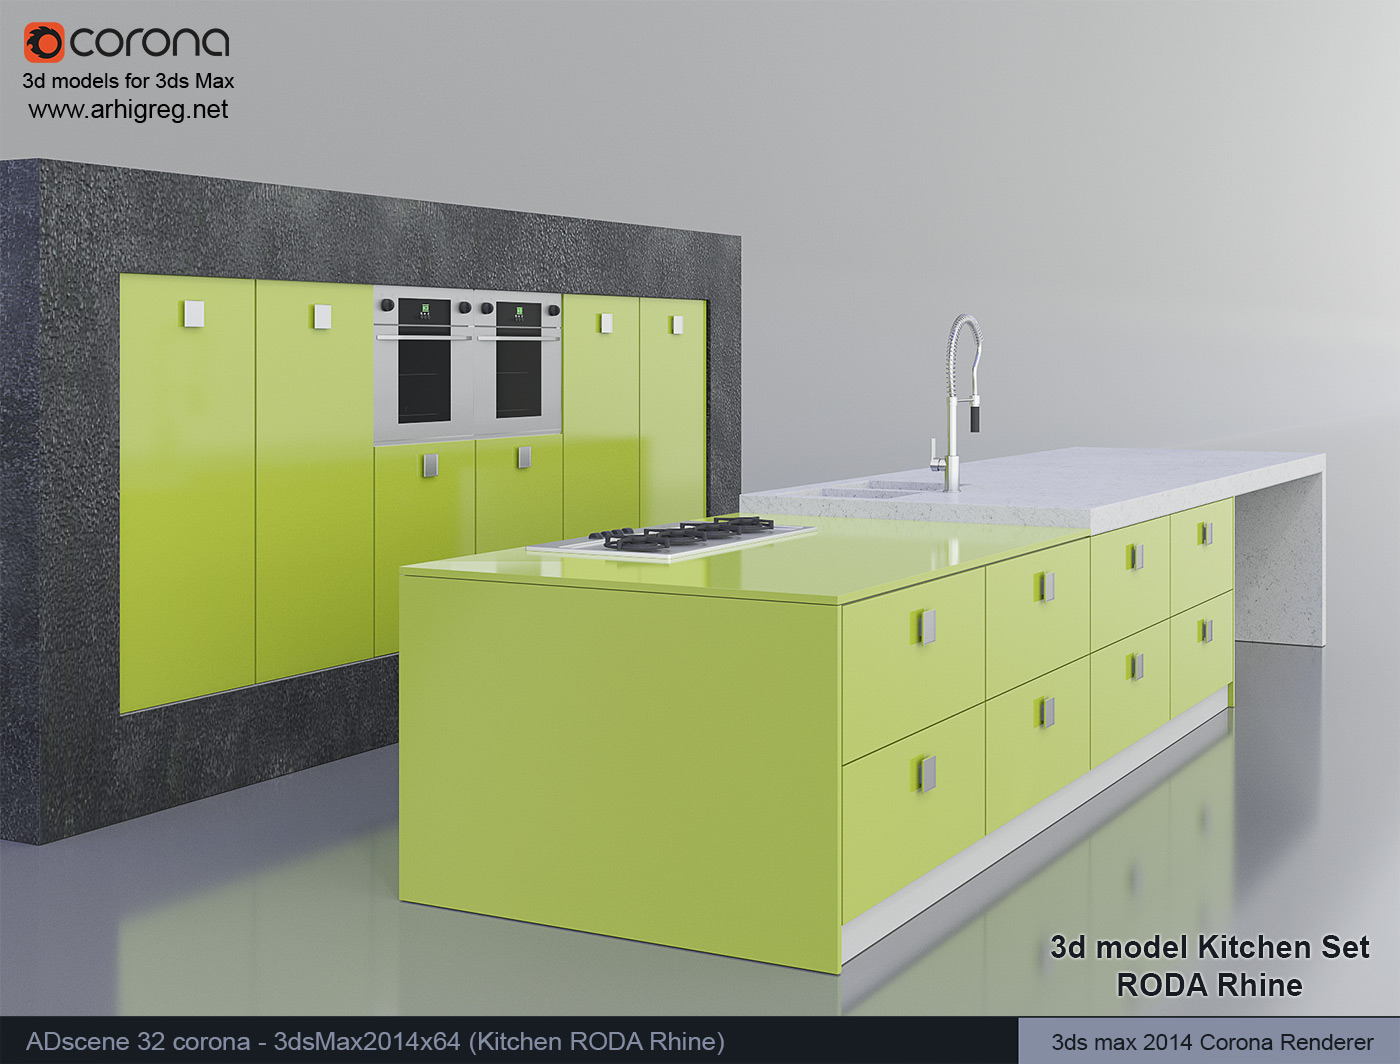 3d model kitchen set roda rhine for Model kitchen images